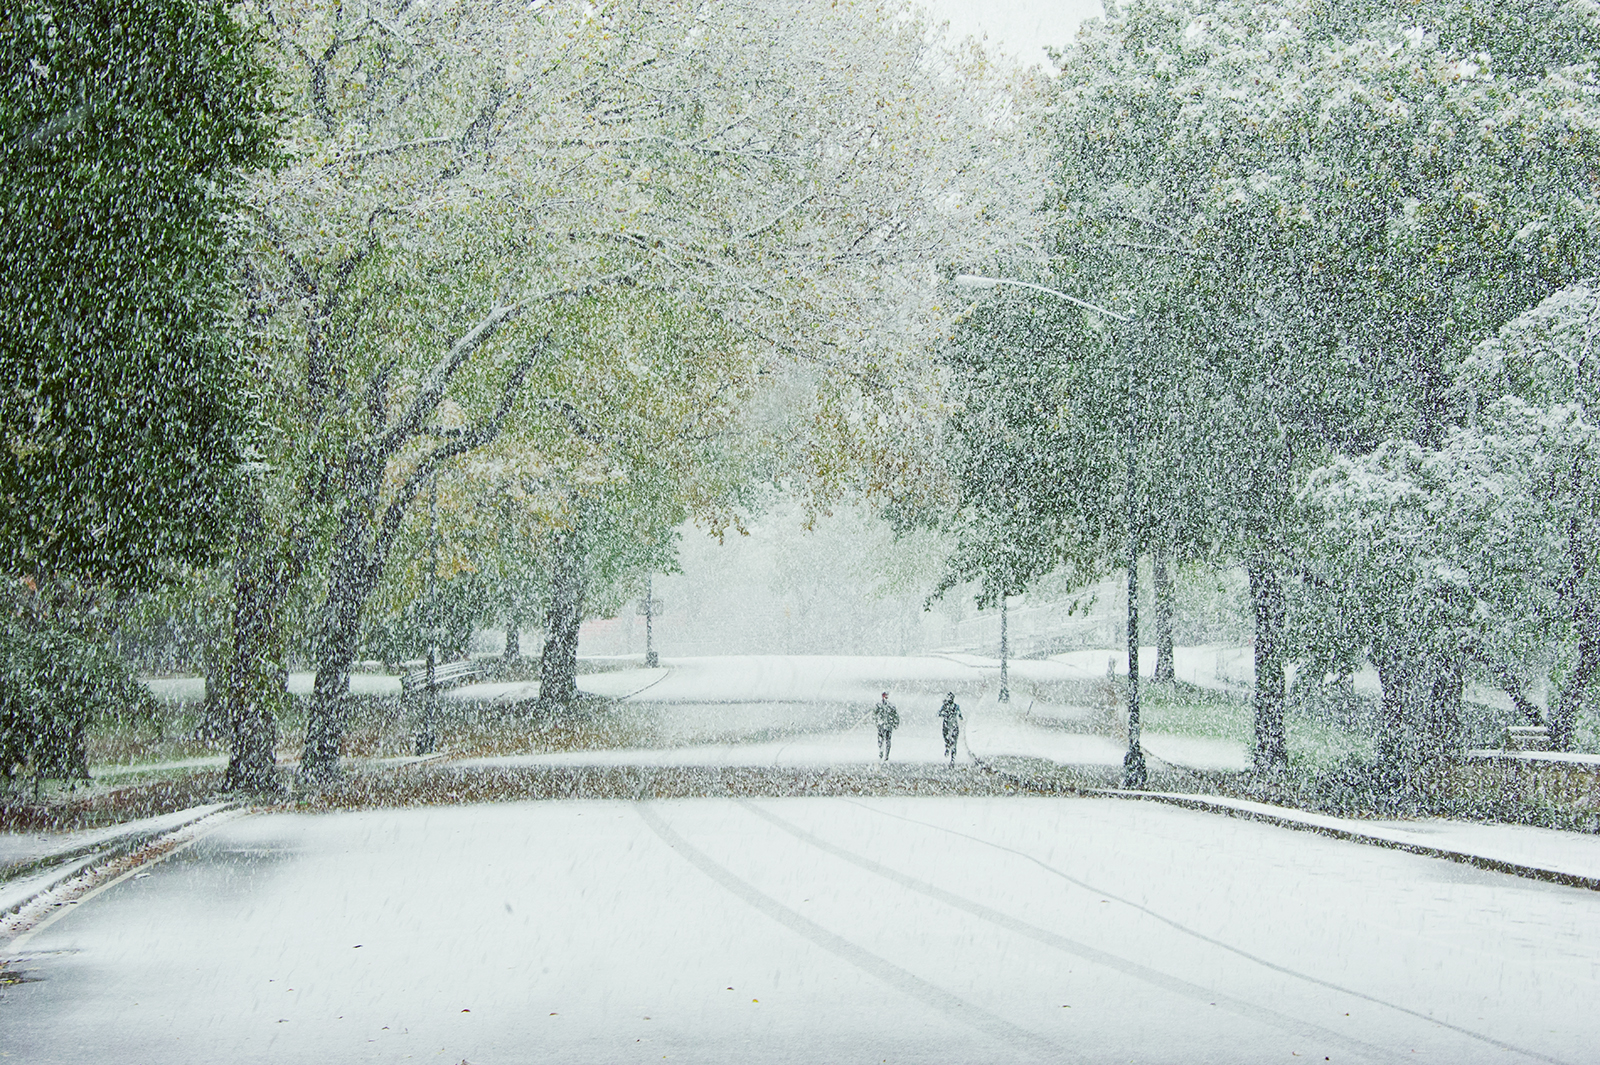 October Snow, Central Park